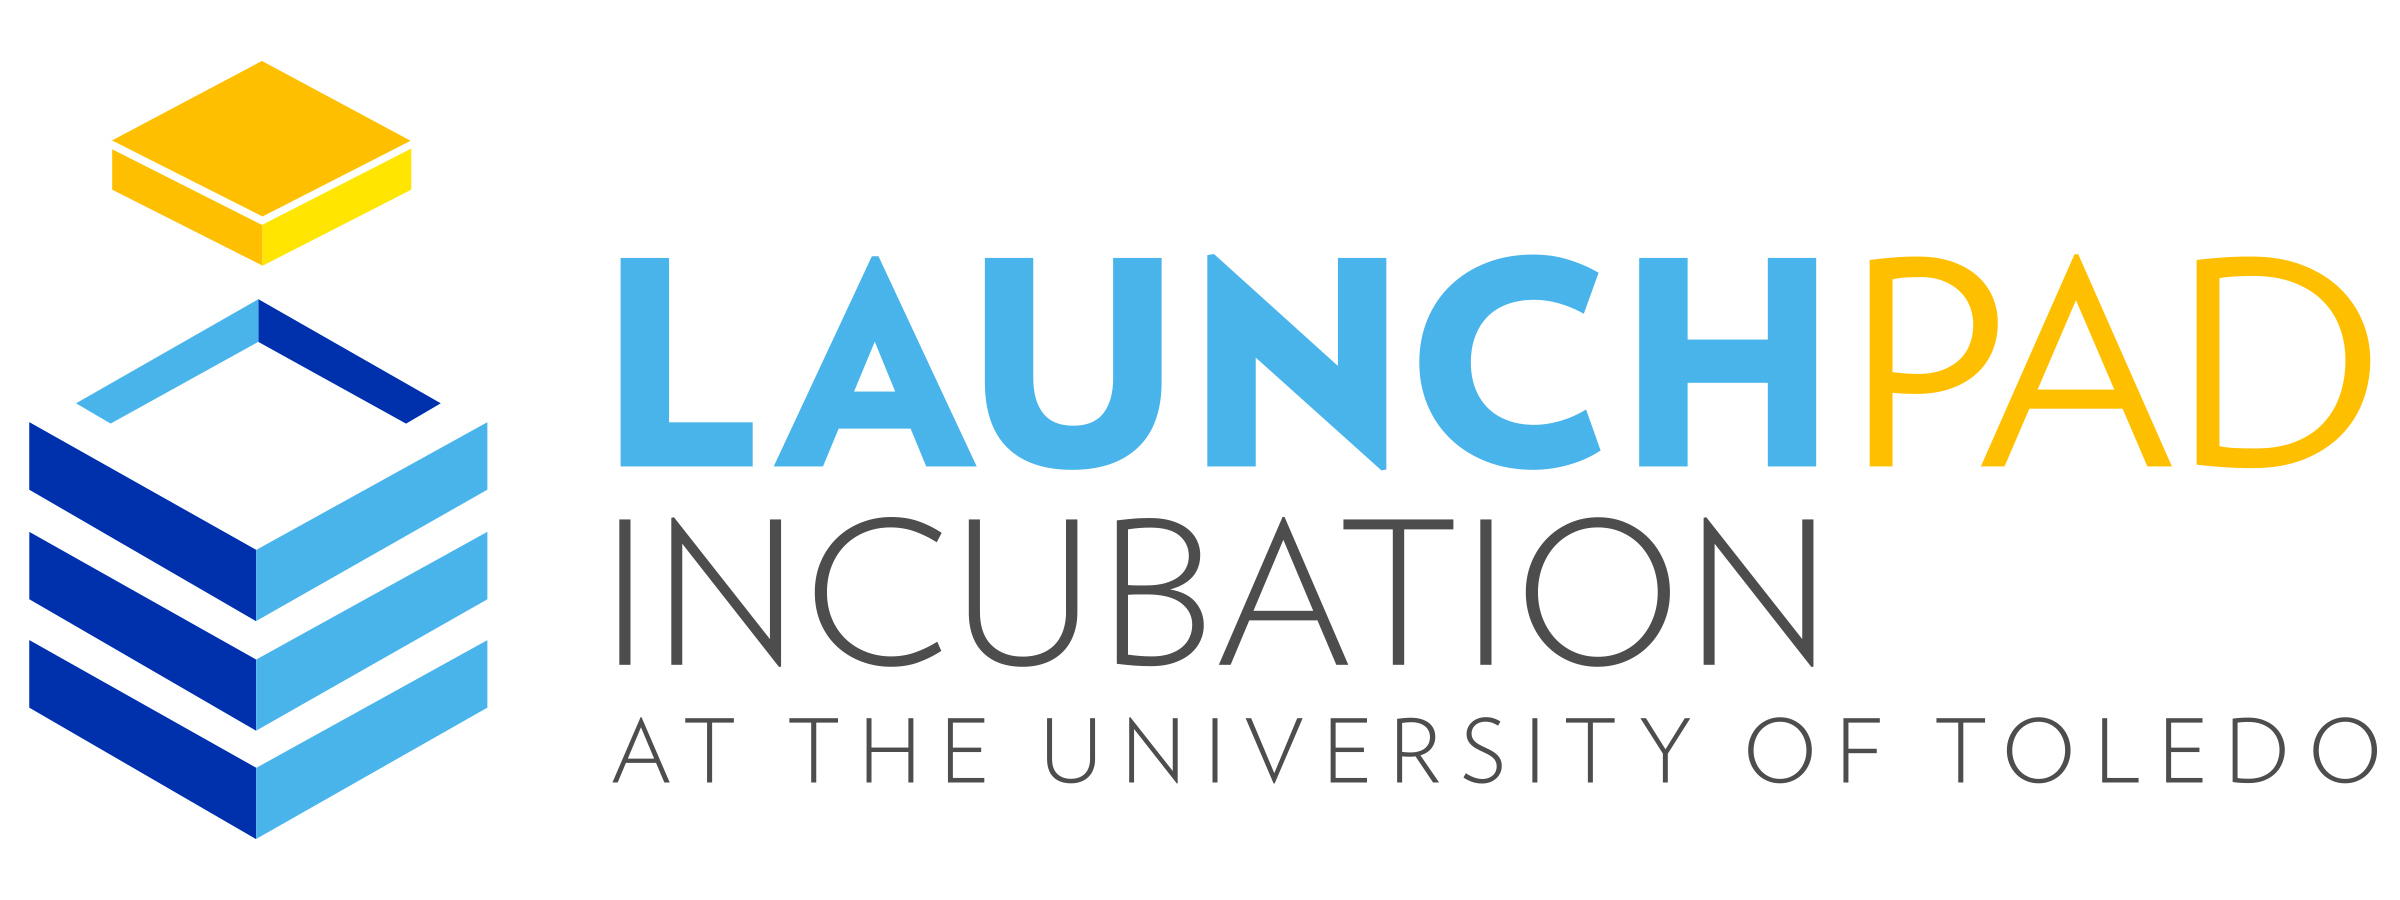 Click here to learn more about our business incubation services